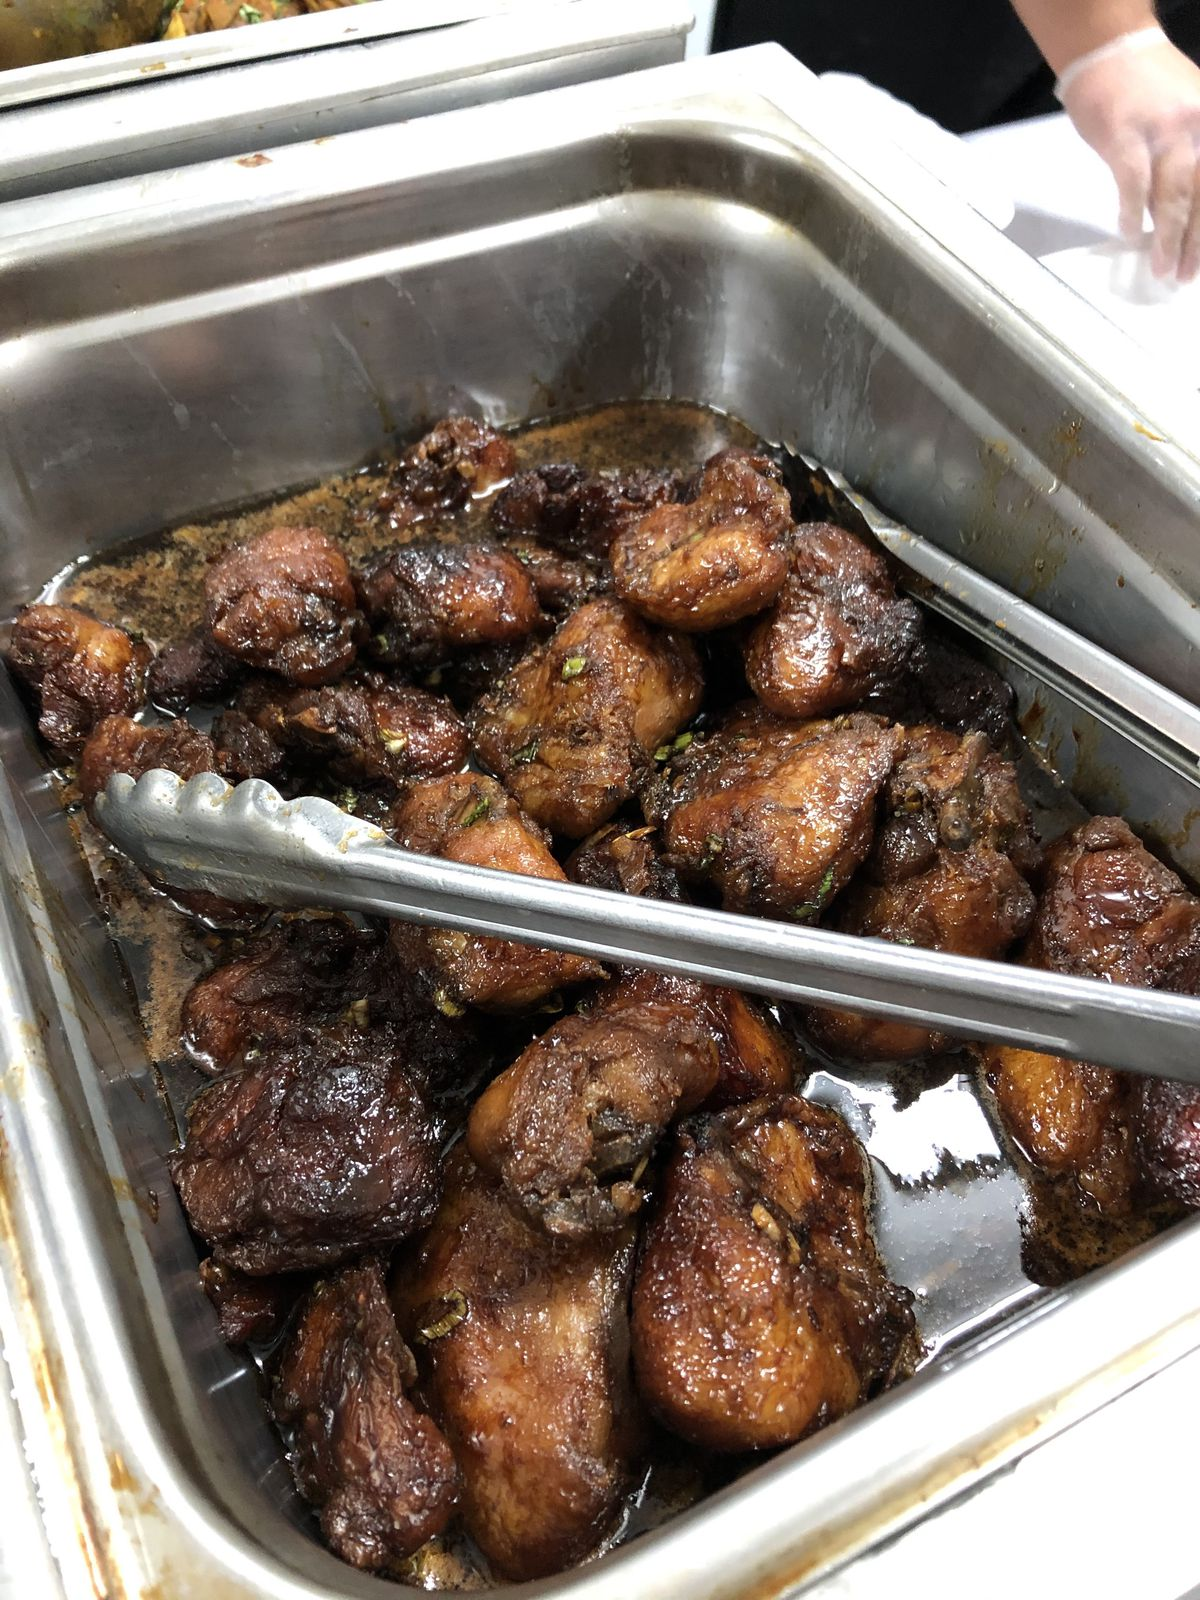 A steam tray of braised turkey tails, cooked until they're very browned and succulent